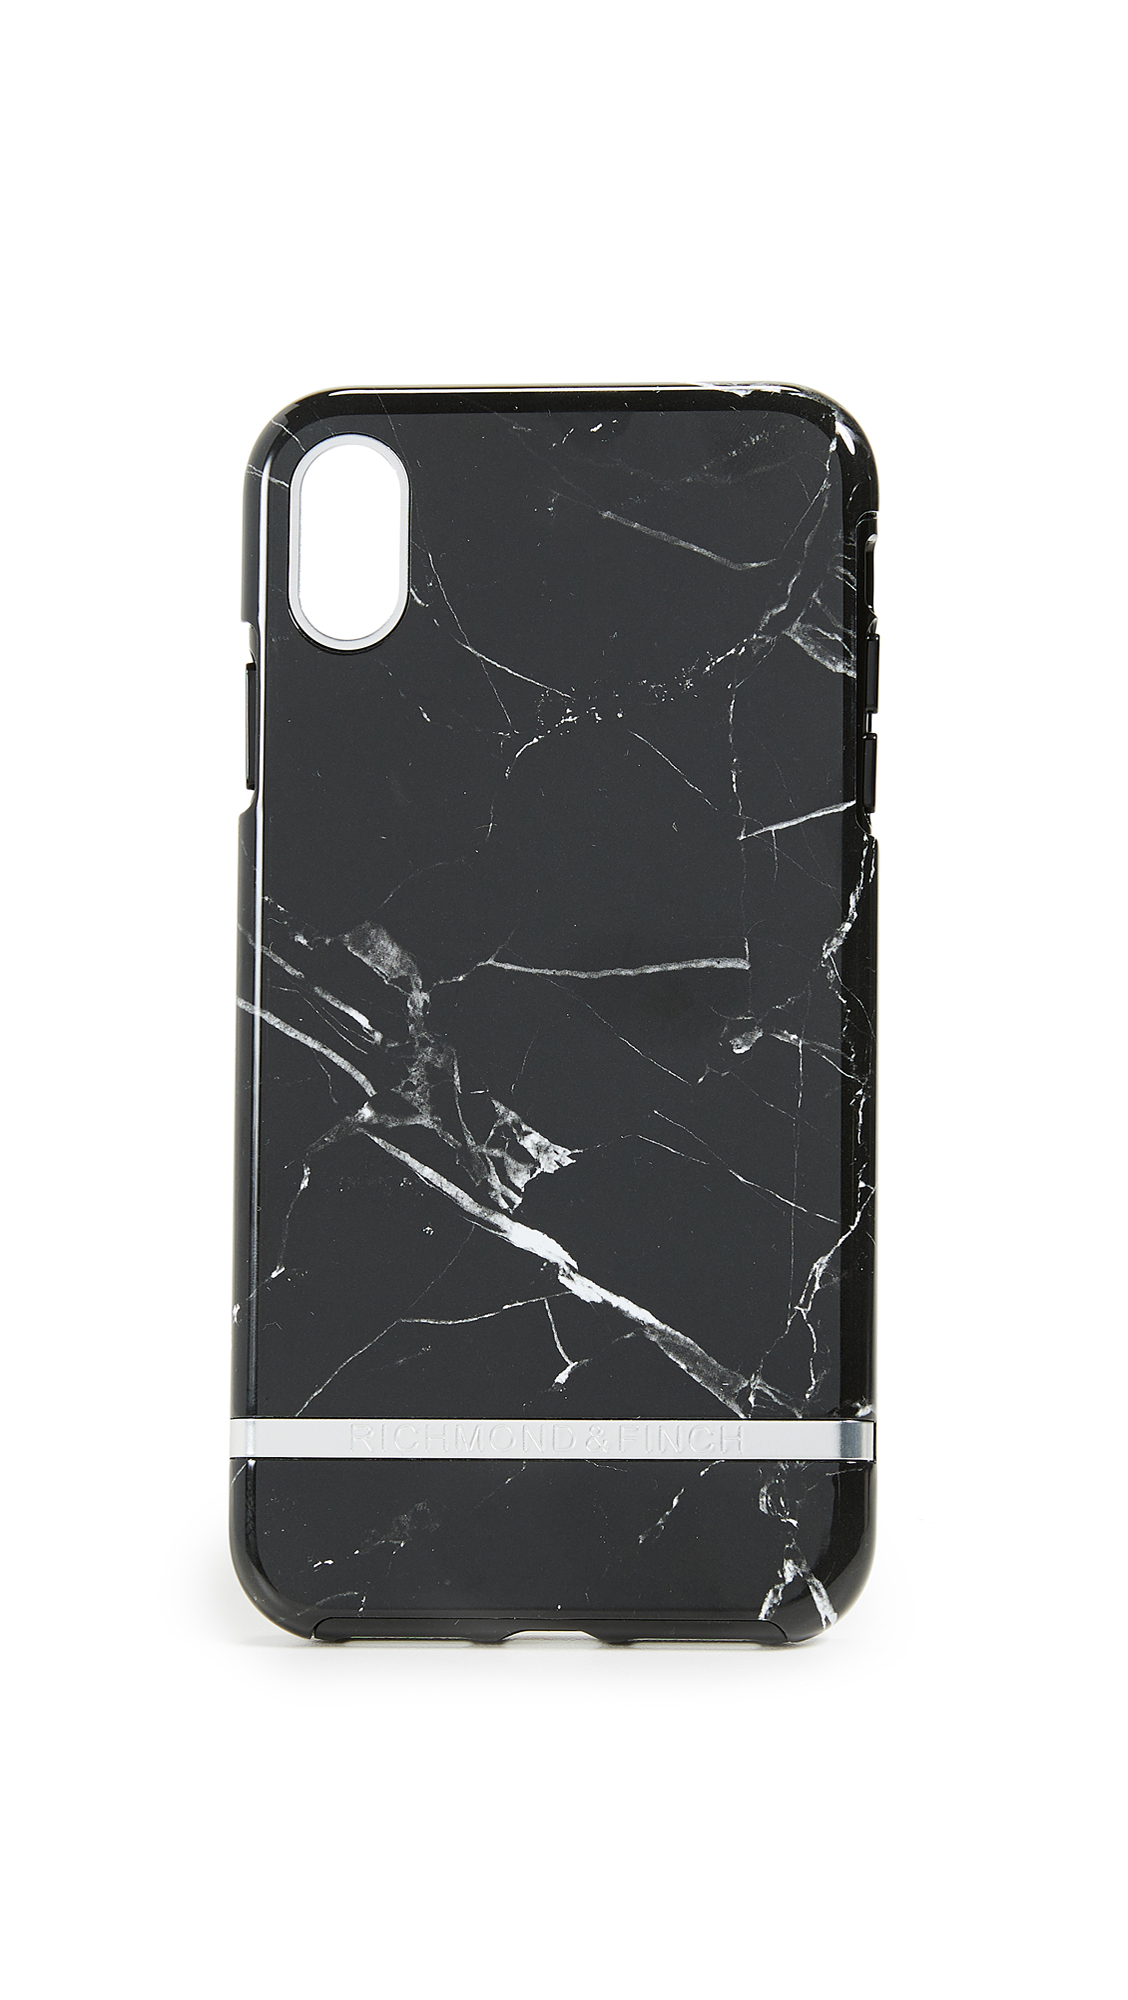 RICHMOND & FINCH Black Marble Iphone Xs Max Case in Black Marble/Silver